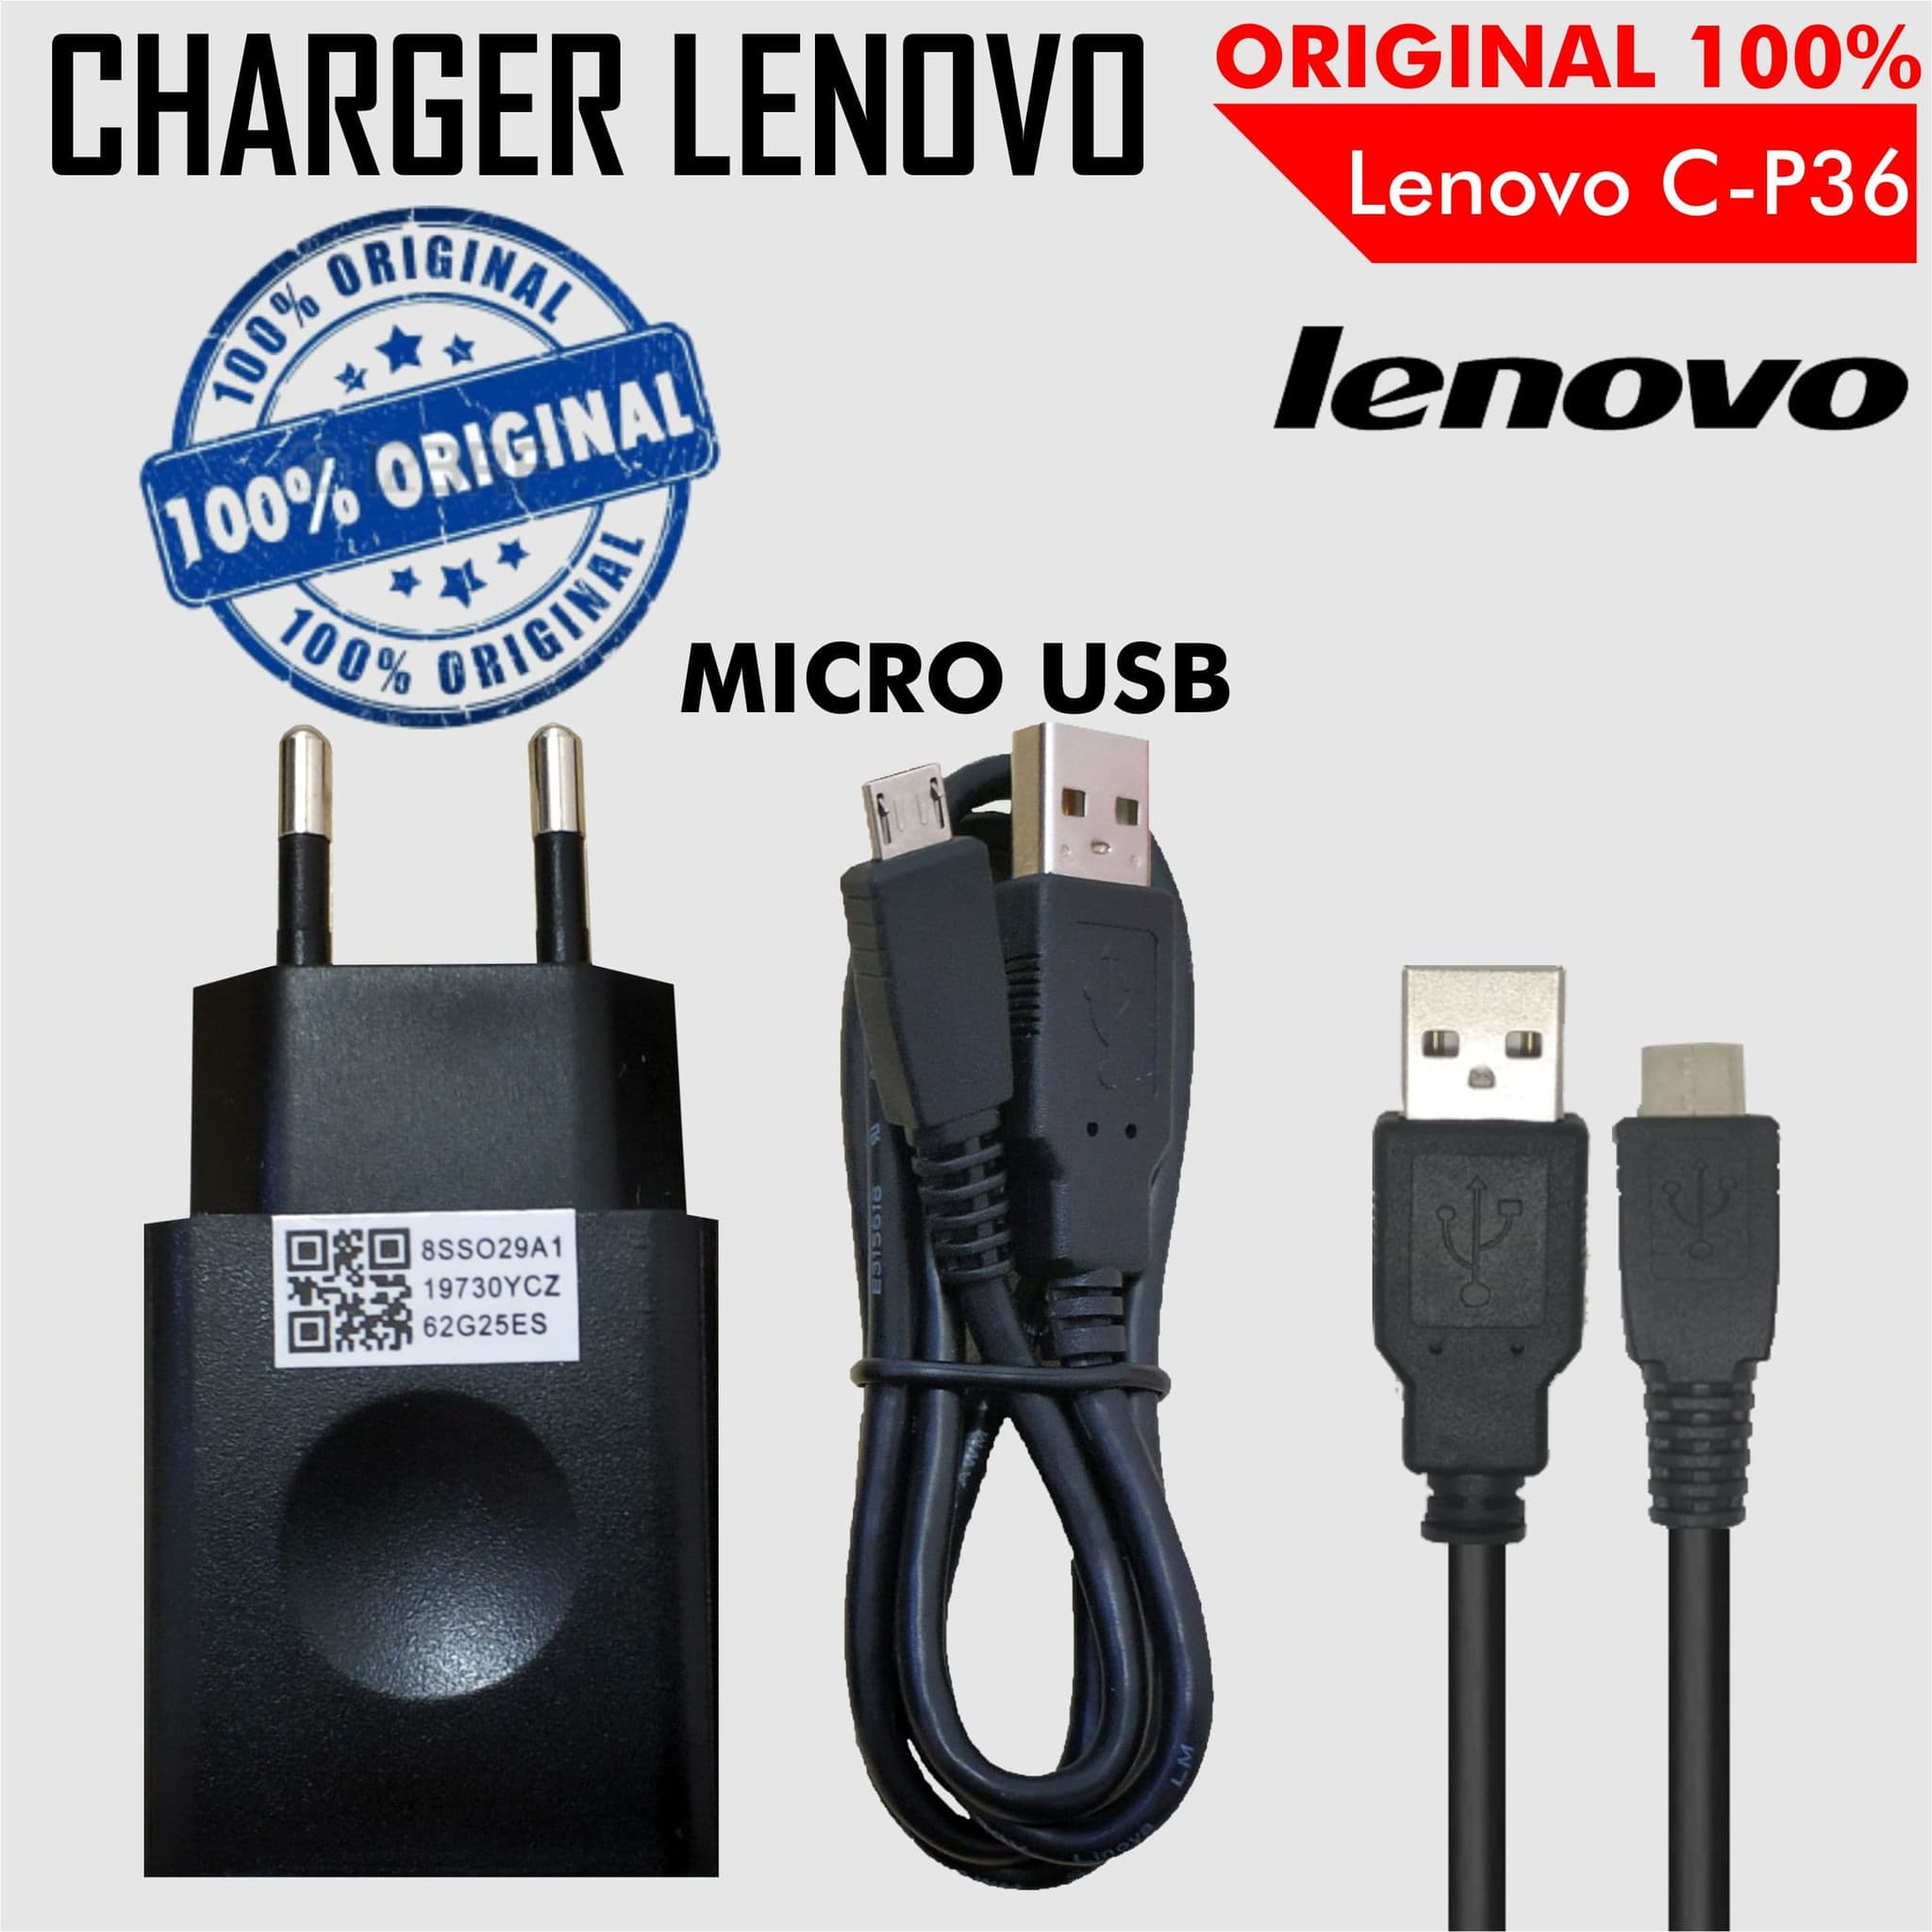 Jual Charger Lenovo C P32 Output 2A with Micro USB Cable Original lapaklama